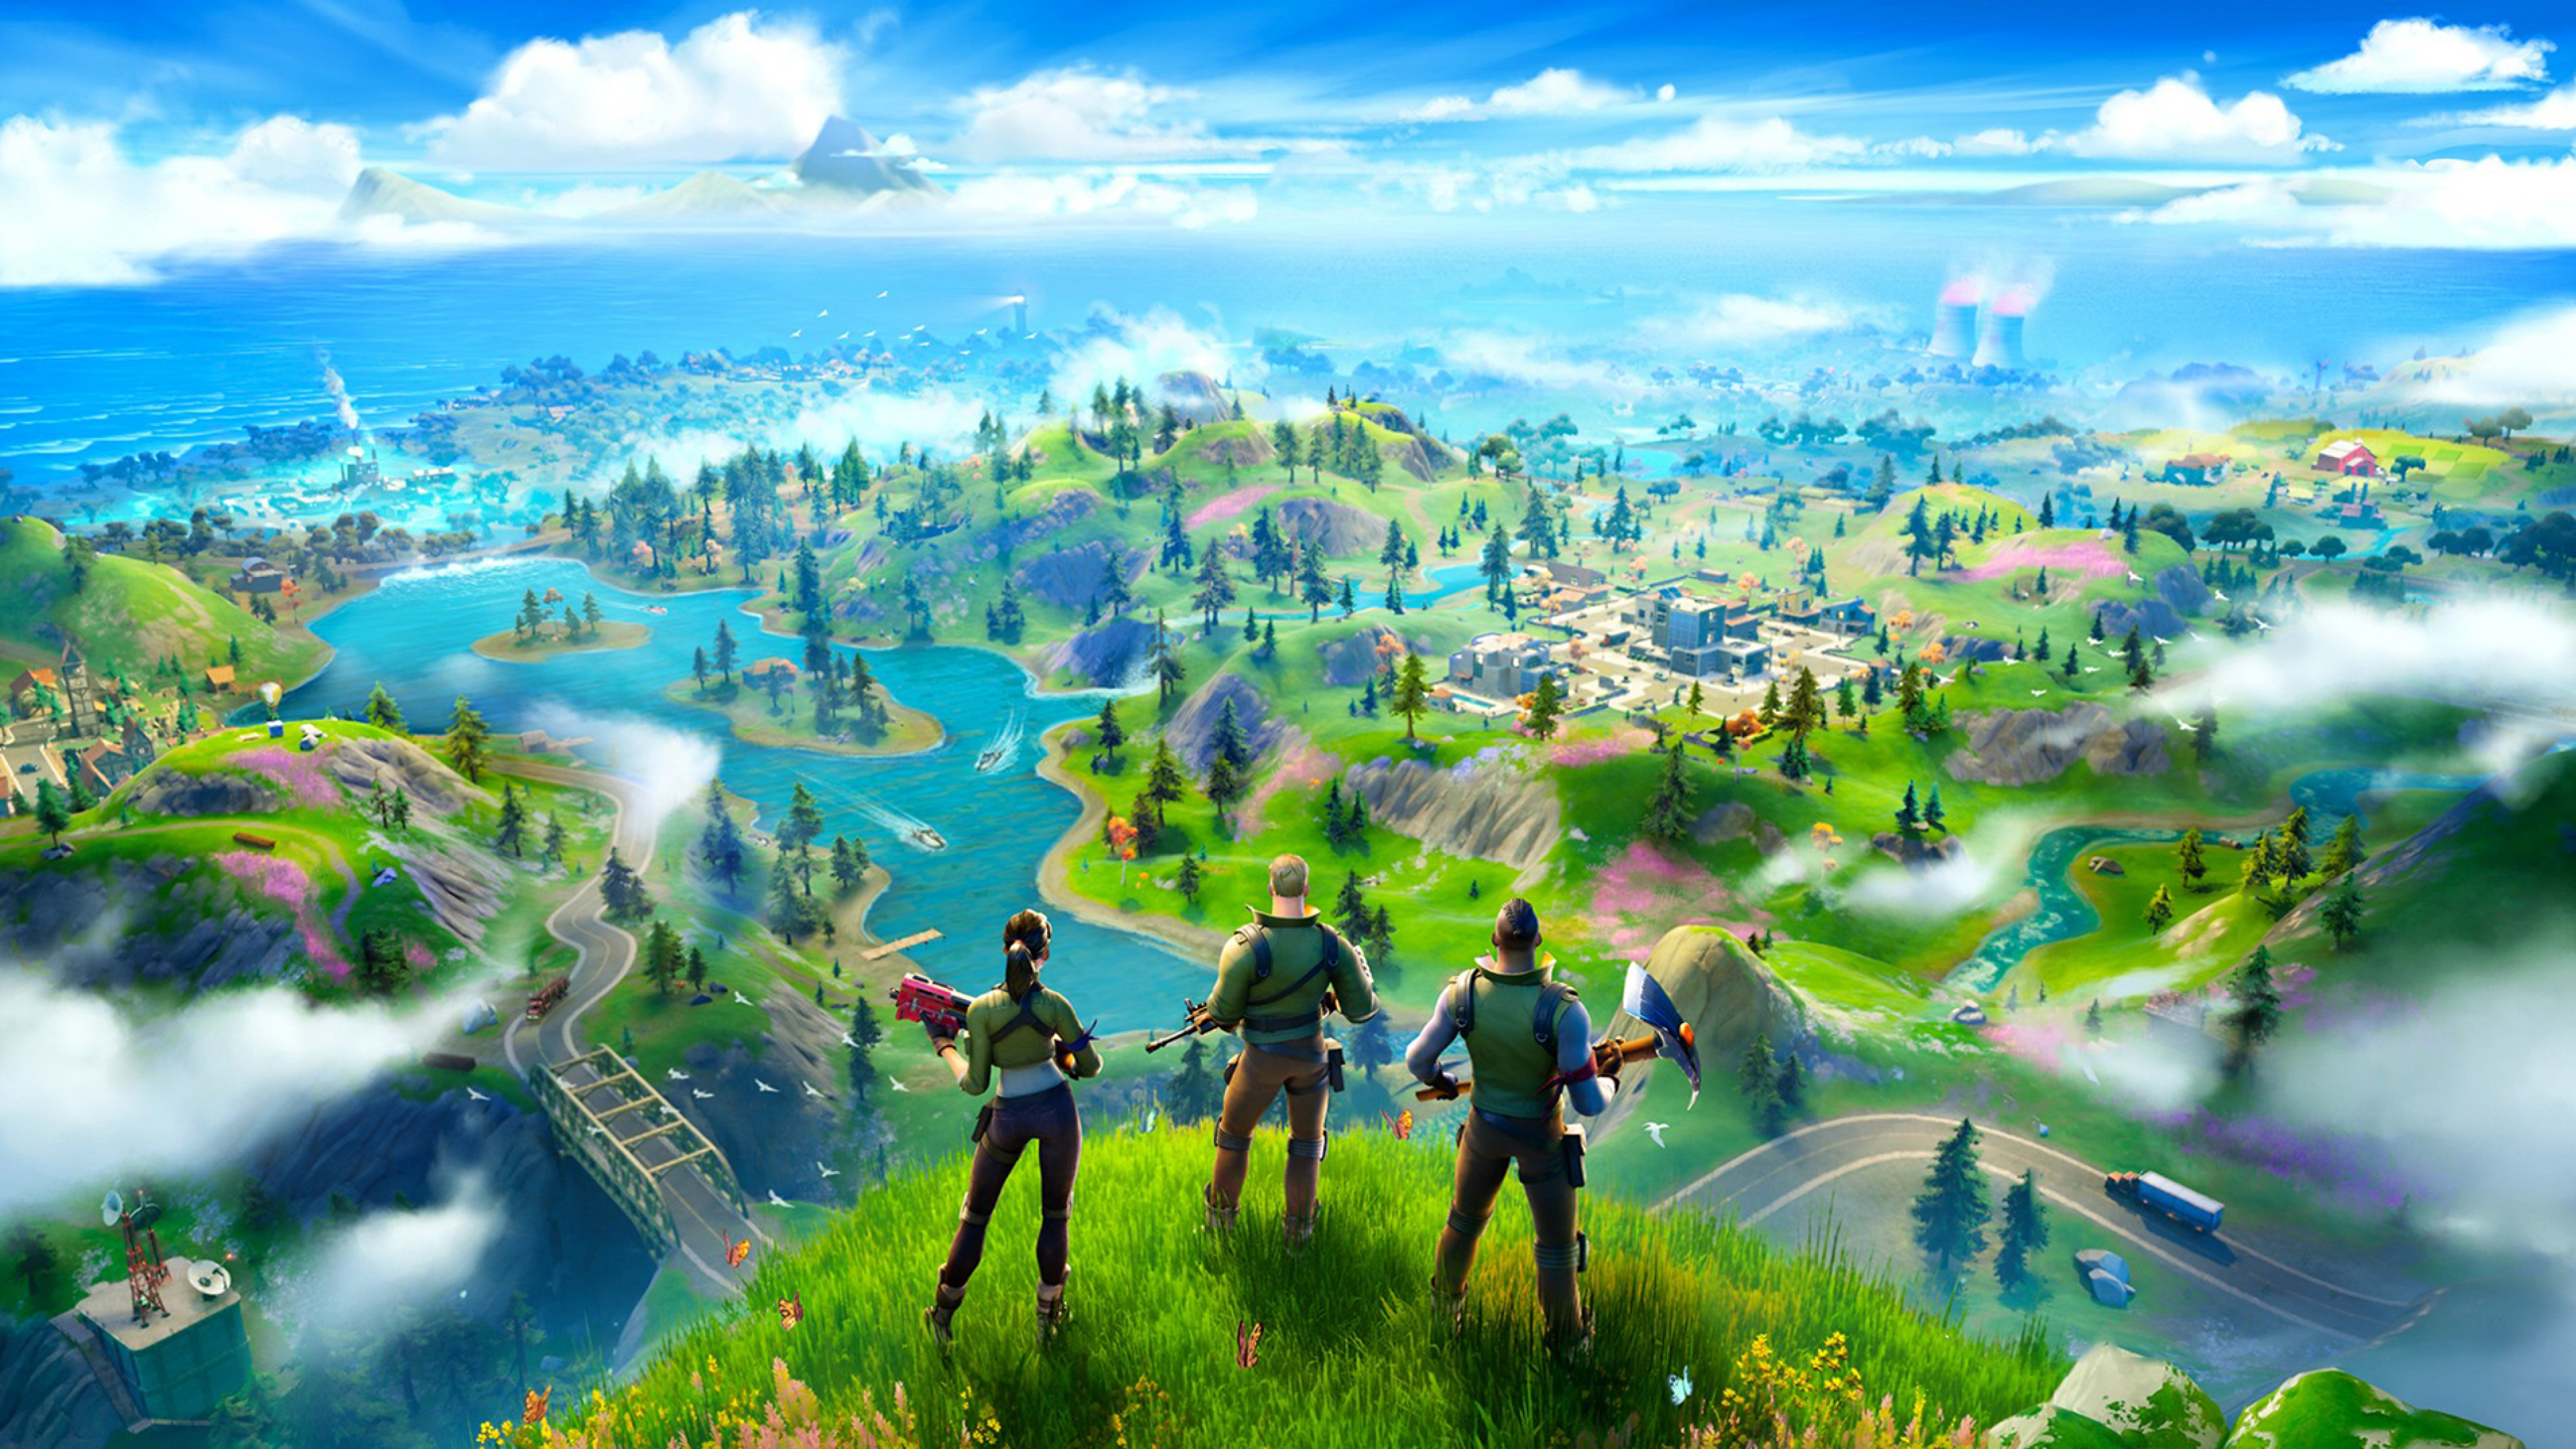 3840x2160 Fortnite Battle Royale Chapter 2 4k Wallpaper Hd Games 4k Wallpapers Images Photos And Background